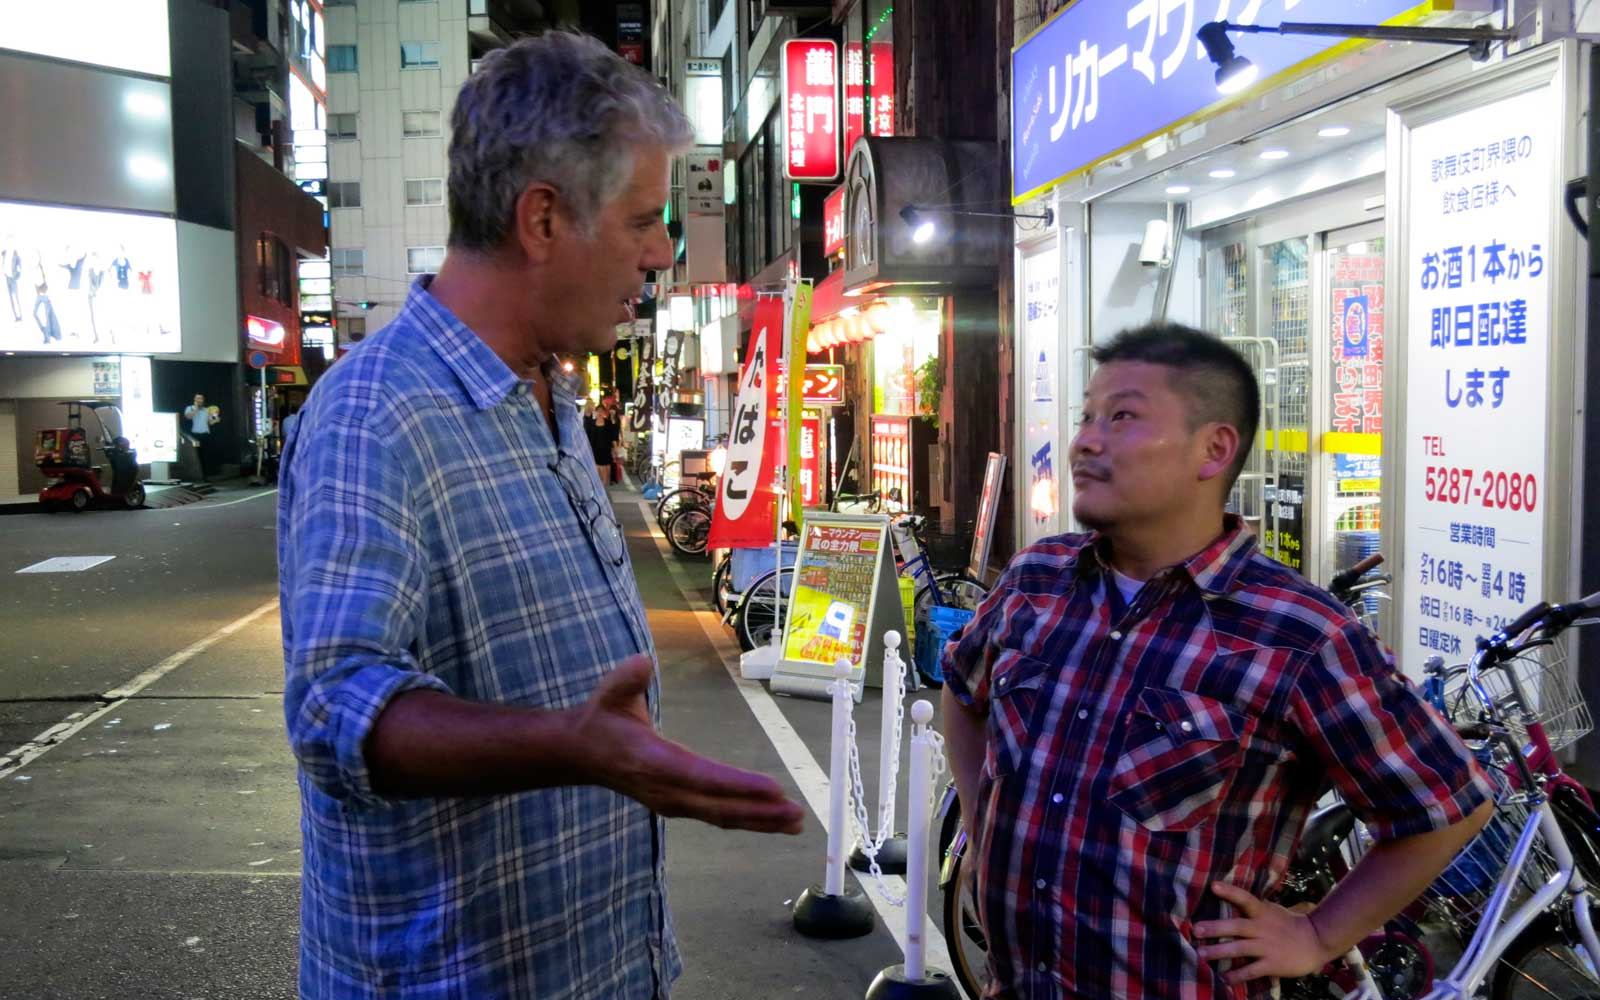 CNN Anthony Bourdain: Parts Unknown 115 Tokyo